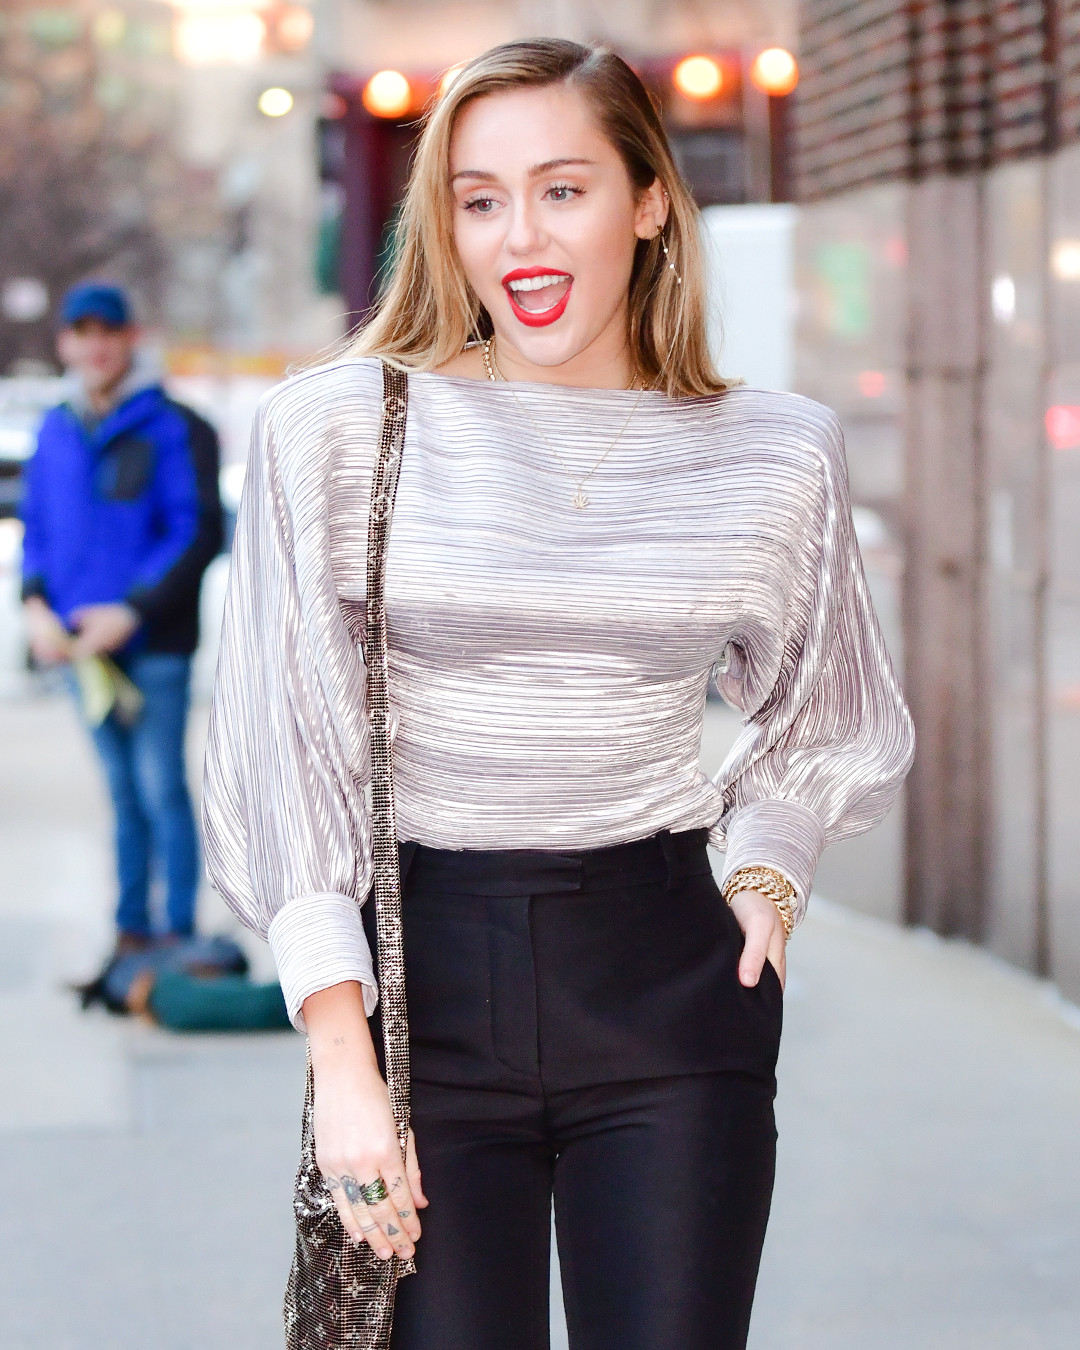 Miley Cyrus Crazy Cool Winter Wardrobe Is A Party In The